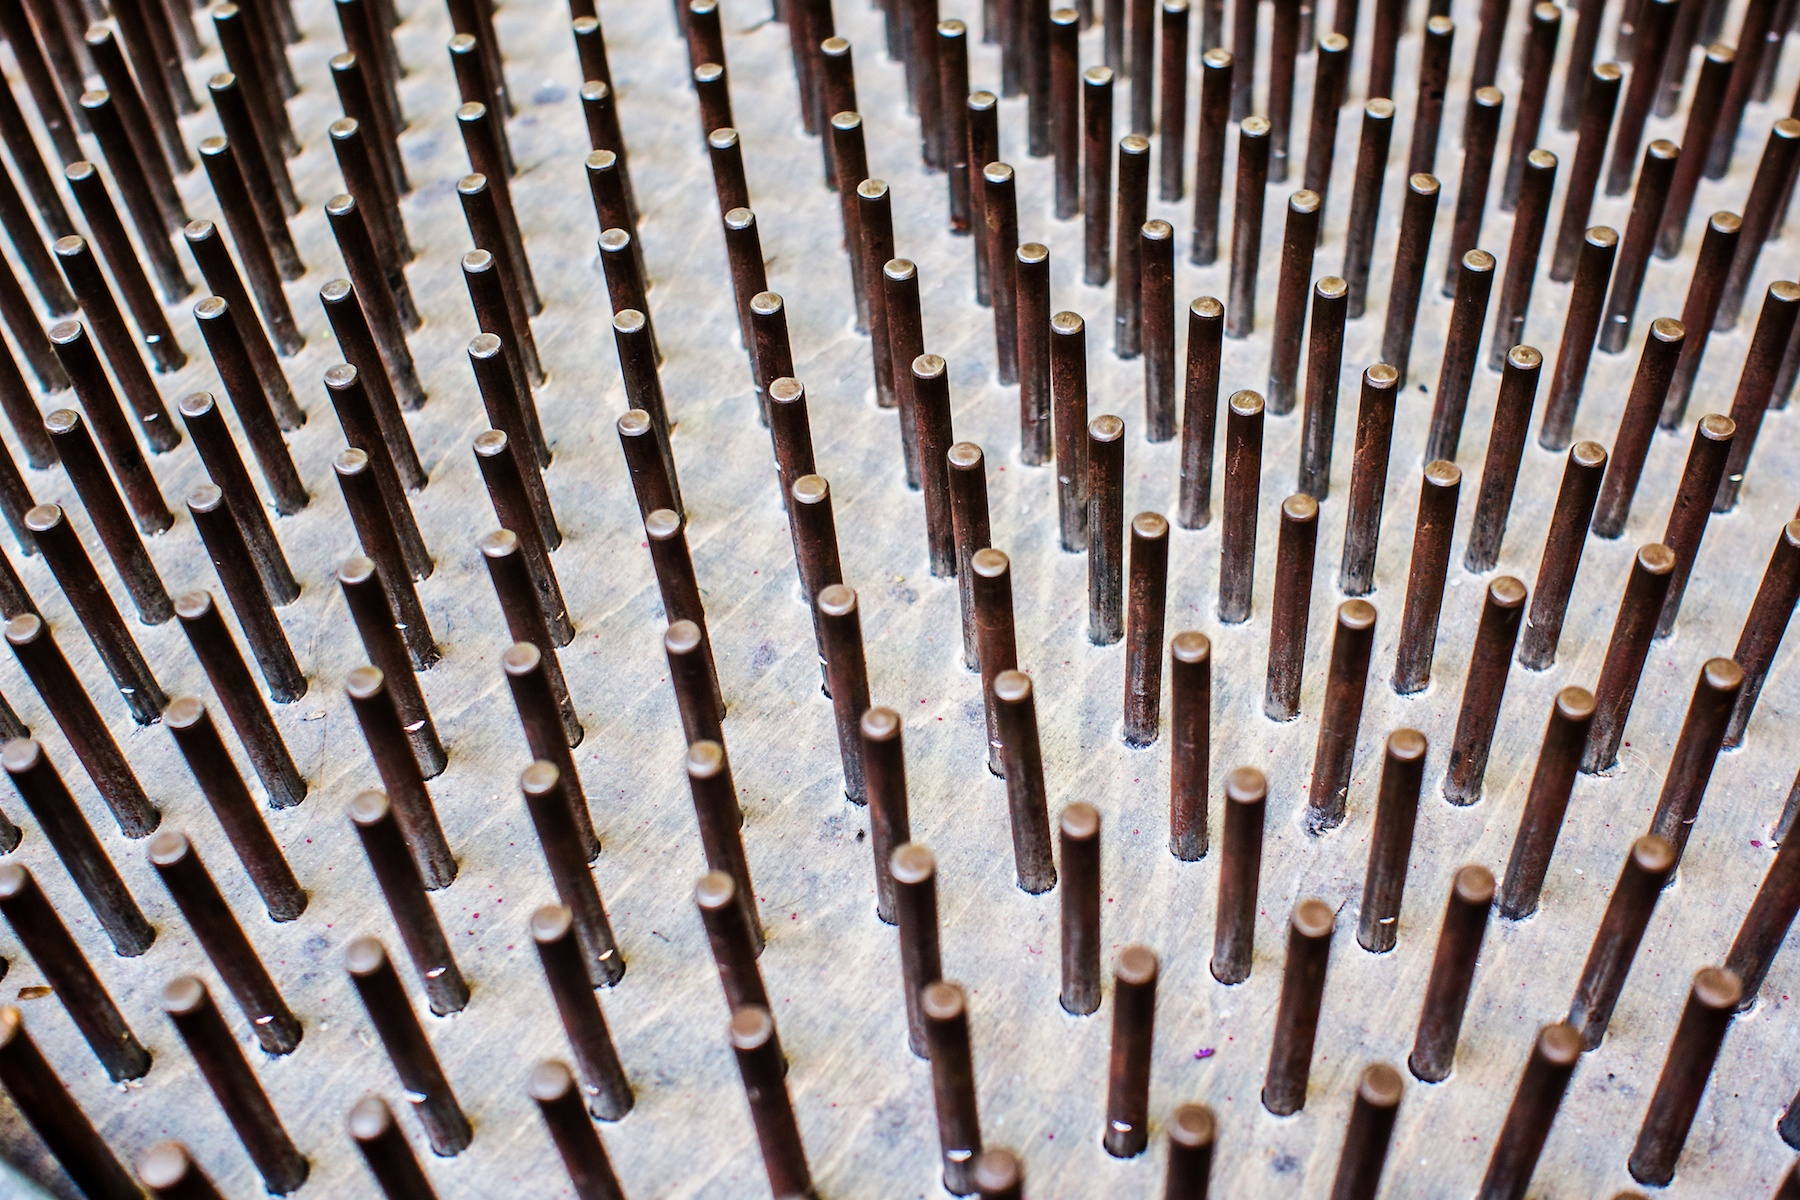 Bed of nails.jpg